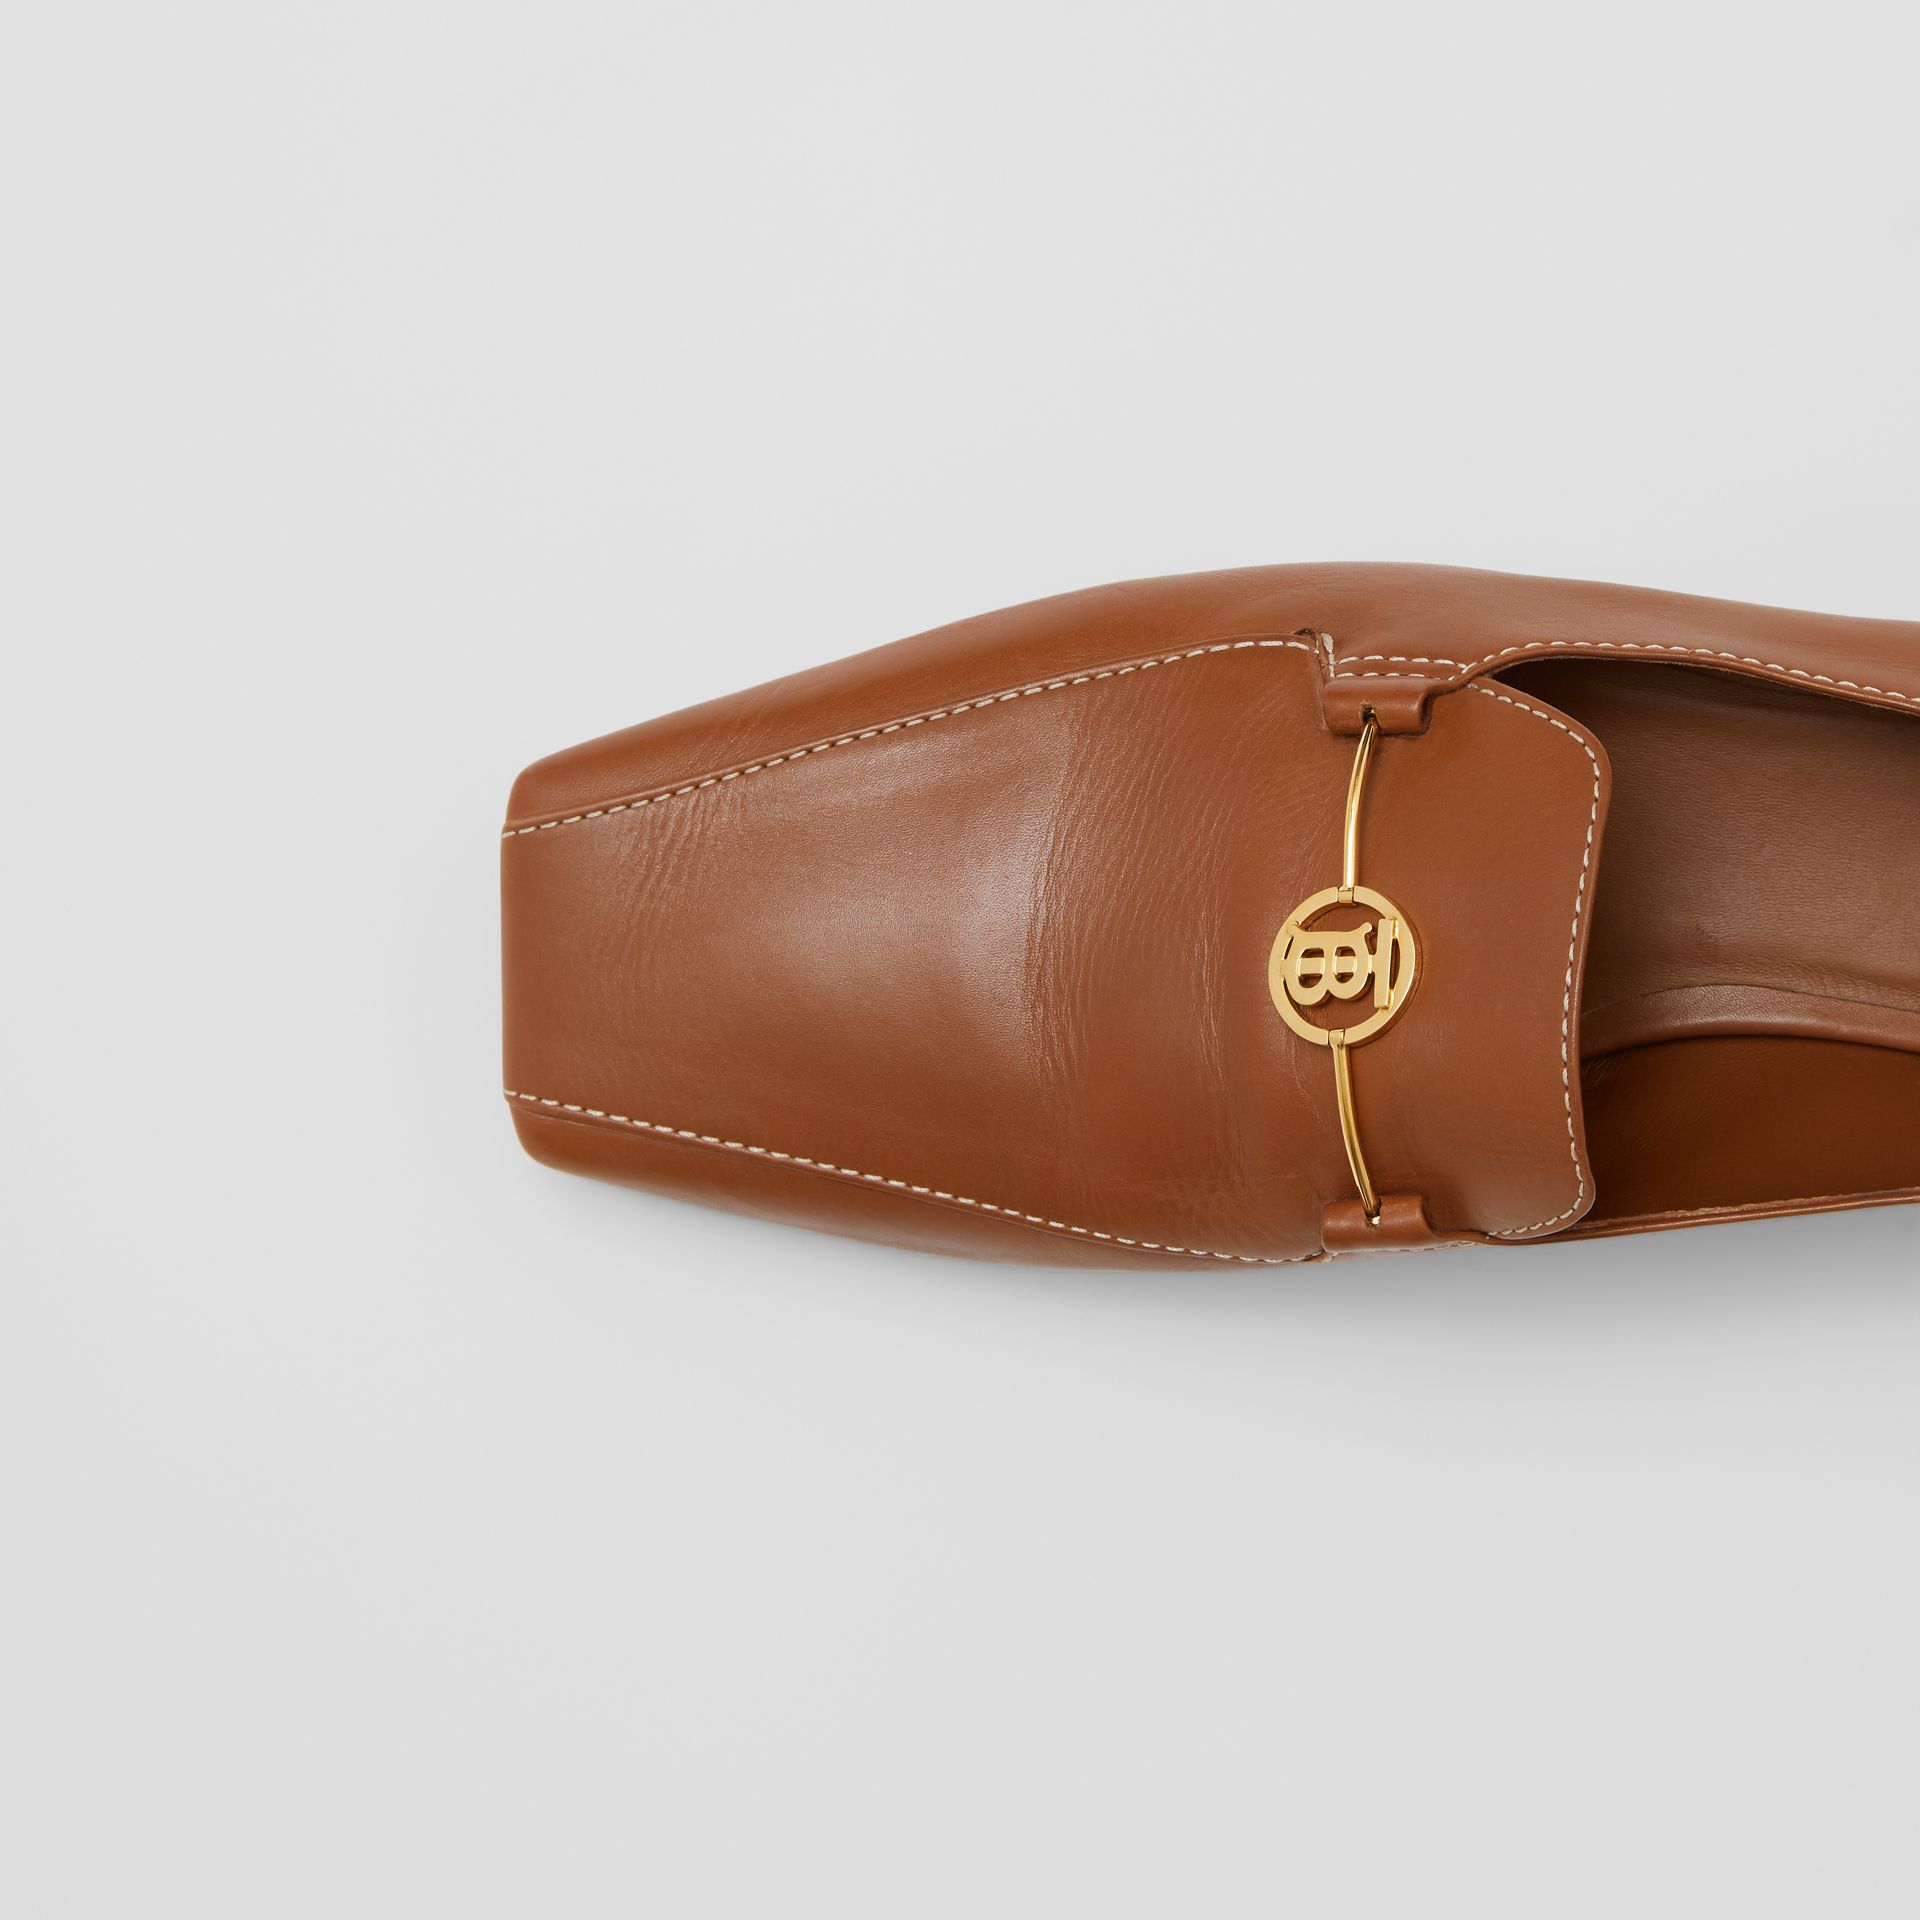 Monogram Motif Leather Loafers in Tan - Women | Burberry United Kingdom - gallery image 1